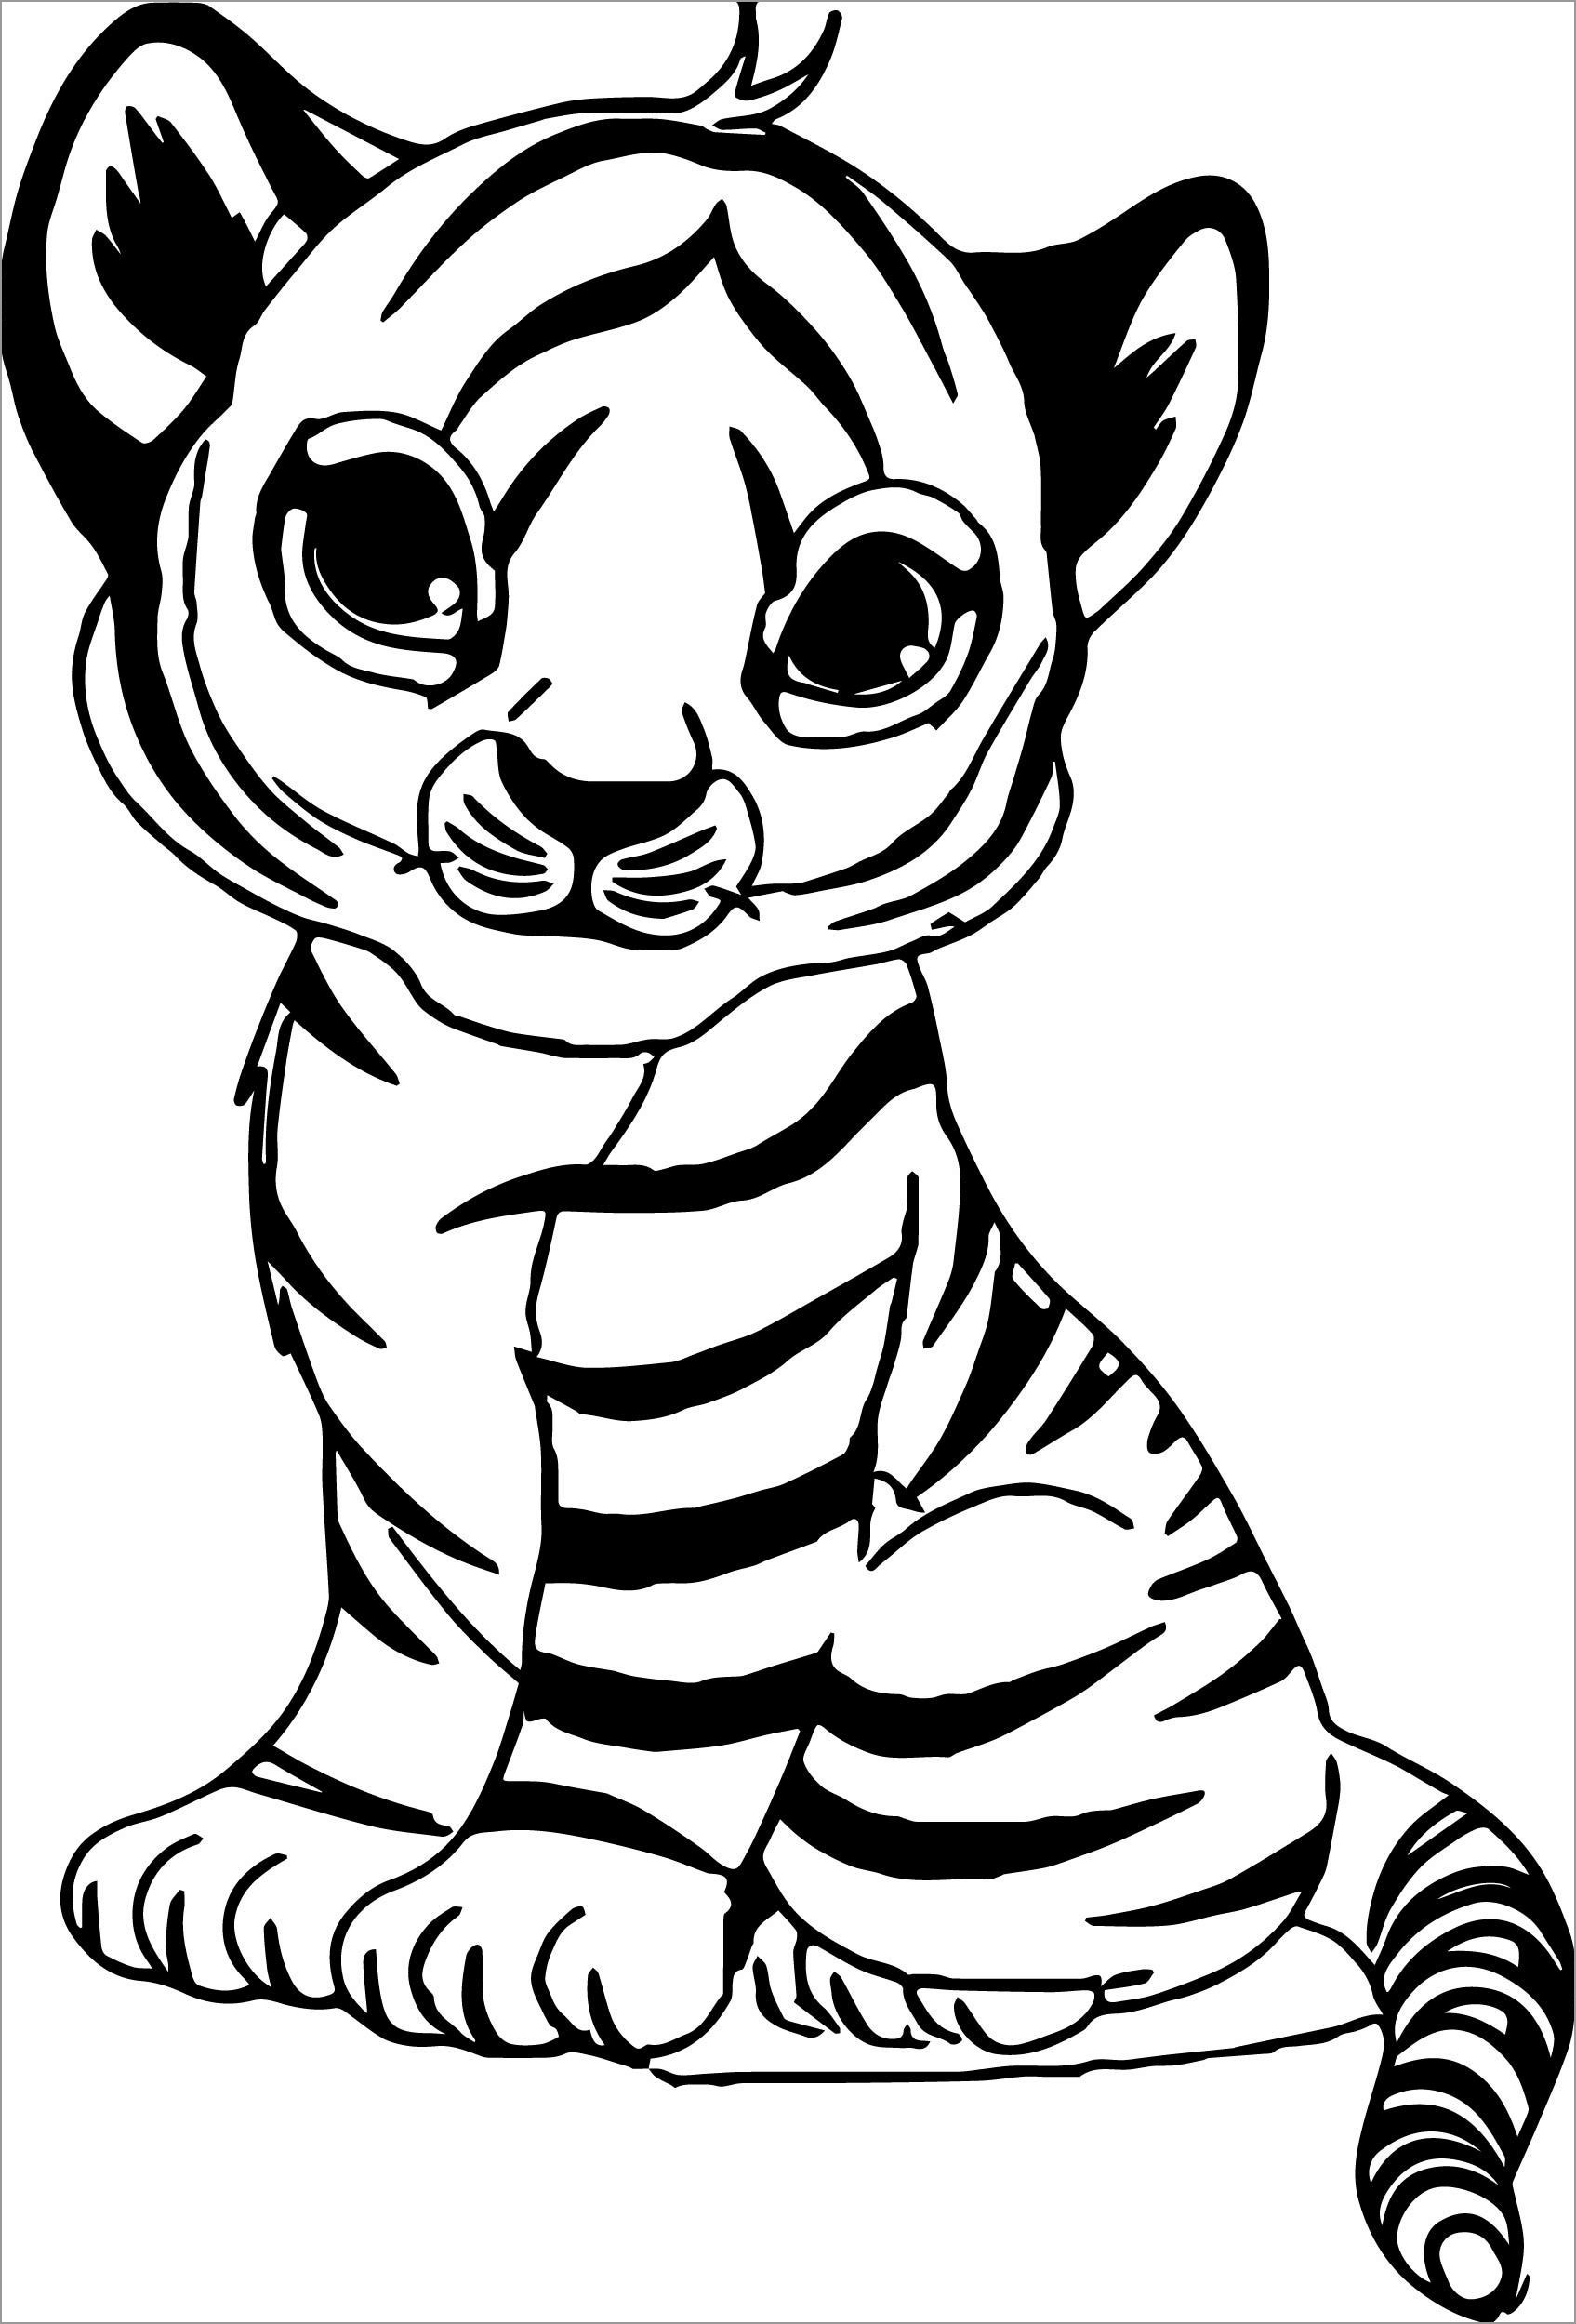 Cute Baby Tiger Coloring Page for Kids